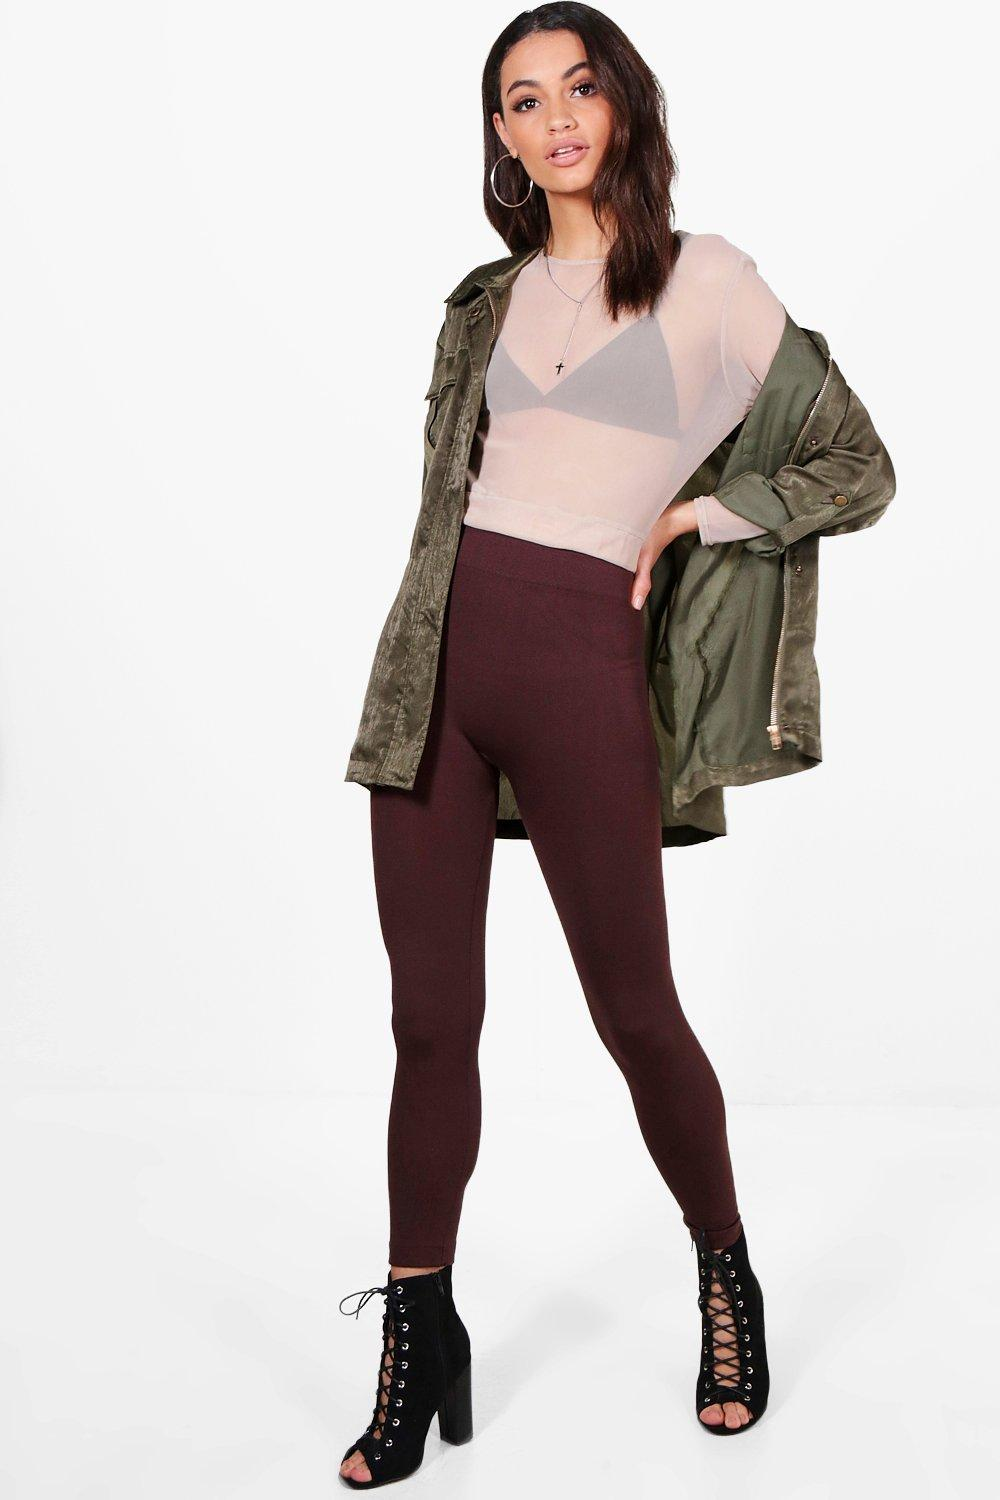 Adelisa Fleece Lined Leggings chocolate